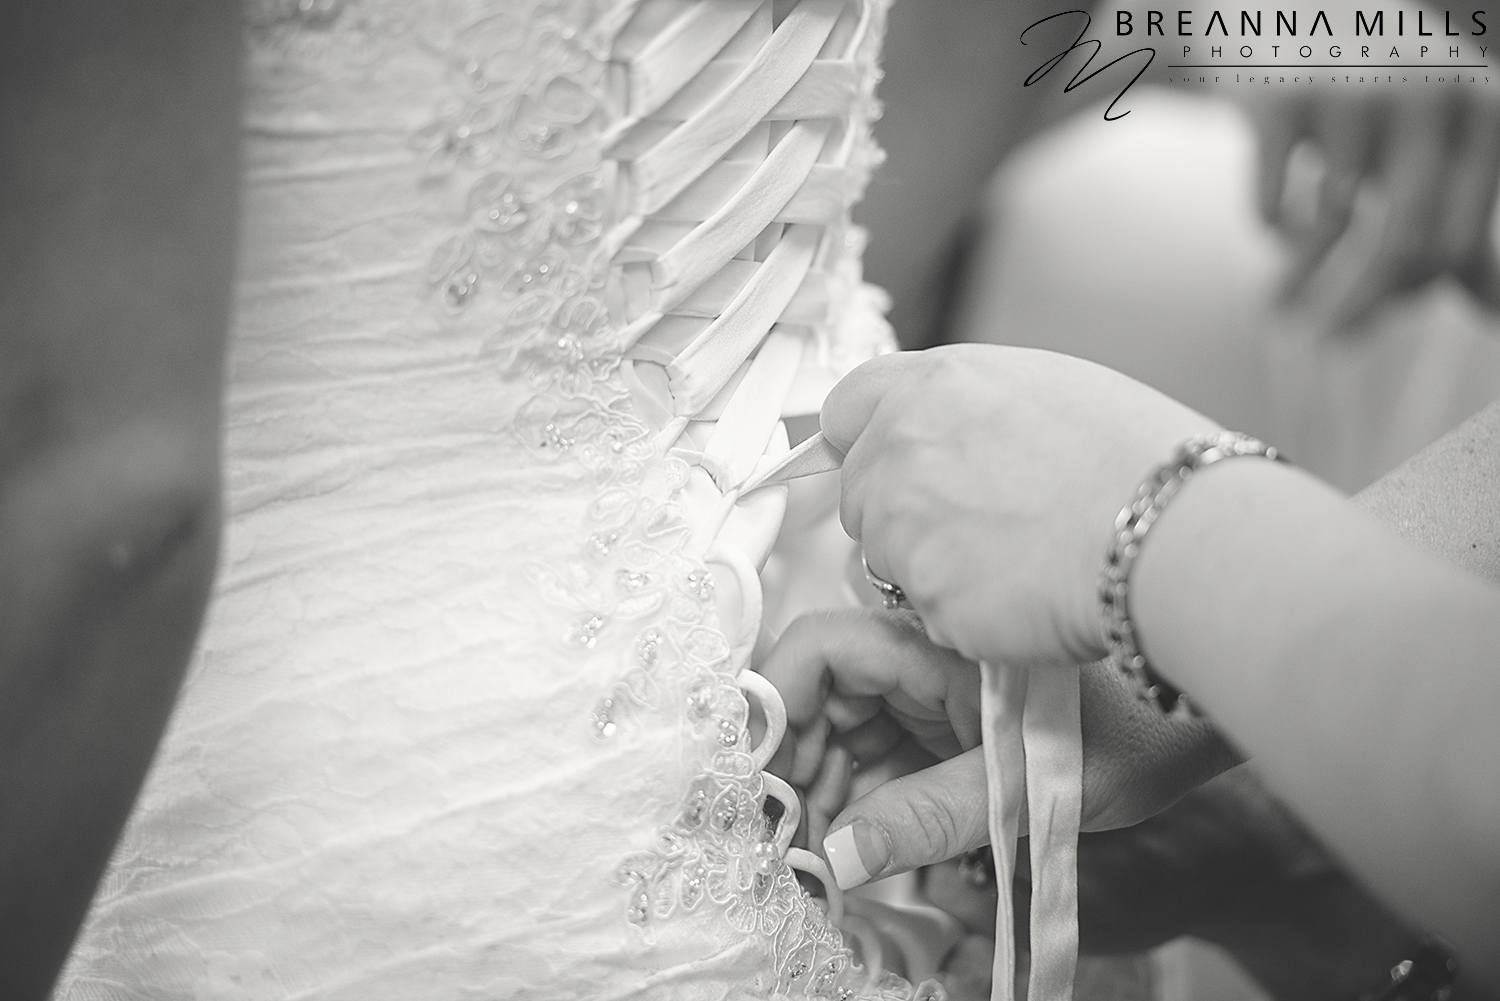 Johnson City Wedding Photographer, Breanna Mills Photography captures detail shots of bride on wedding day.